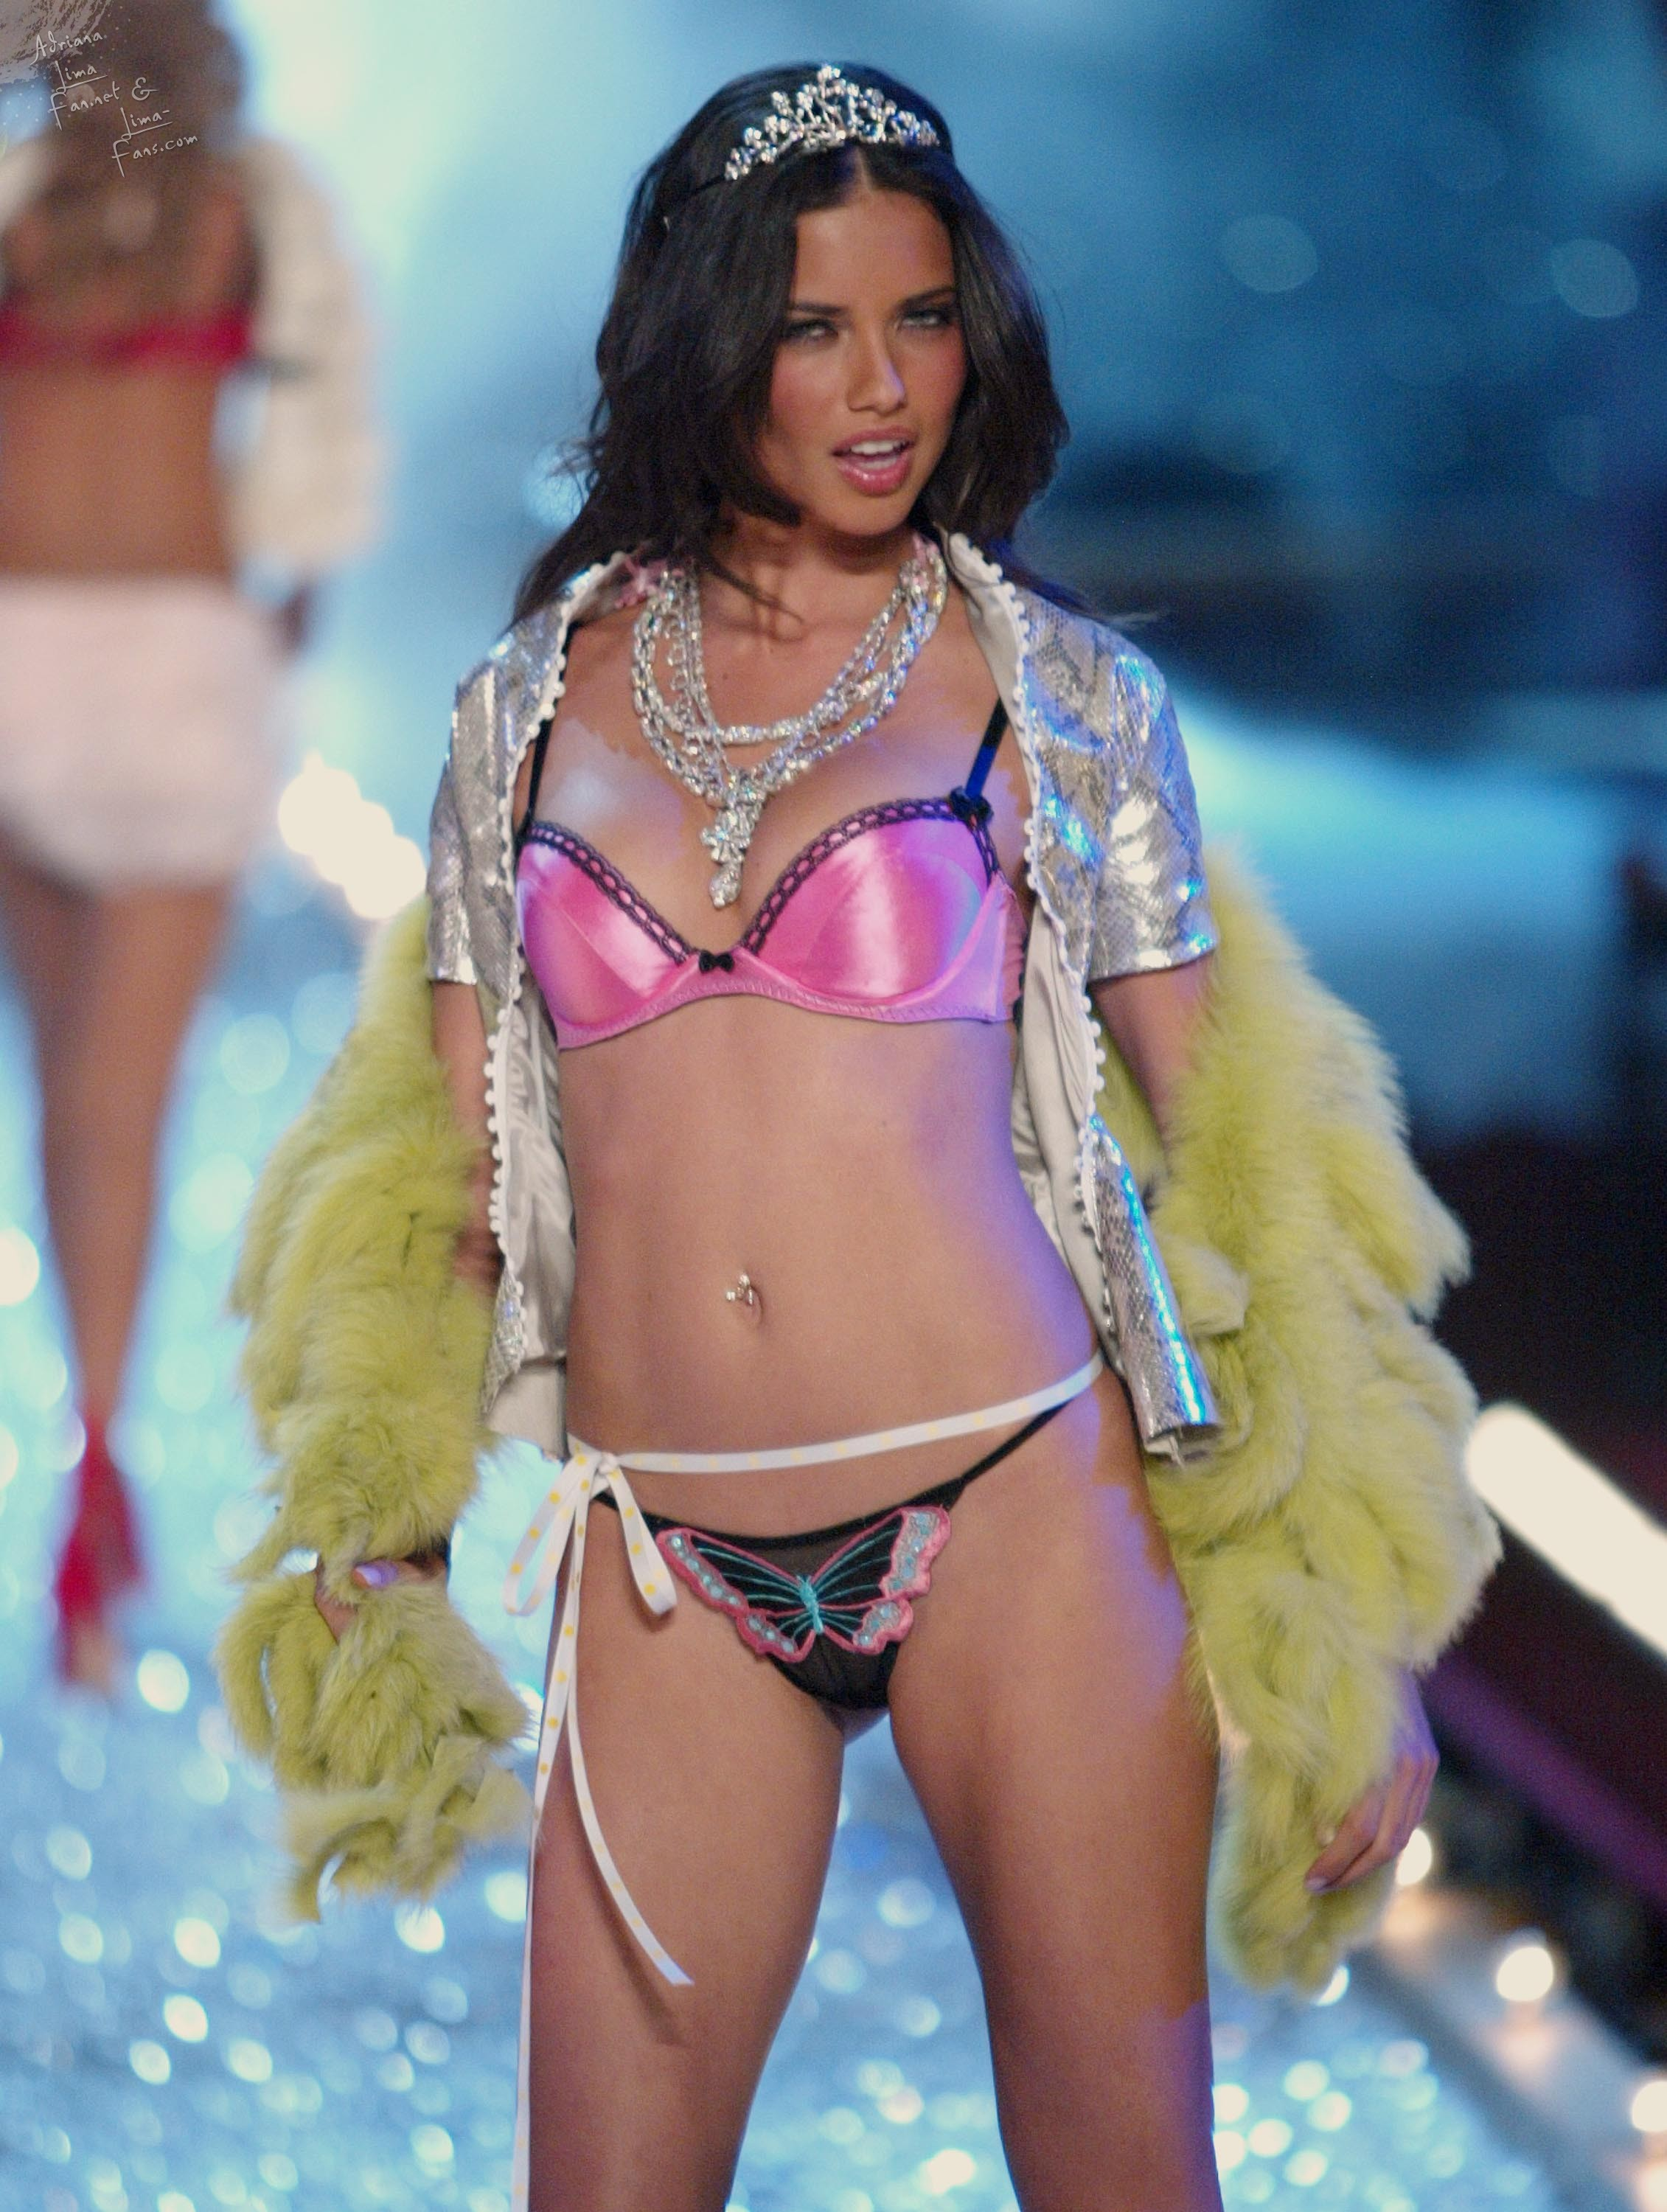 adriana-lima-pussy-picture-young-gilrs-porn-films